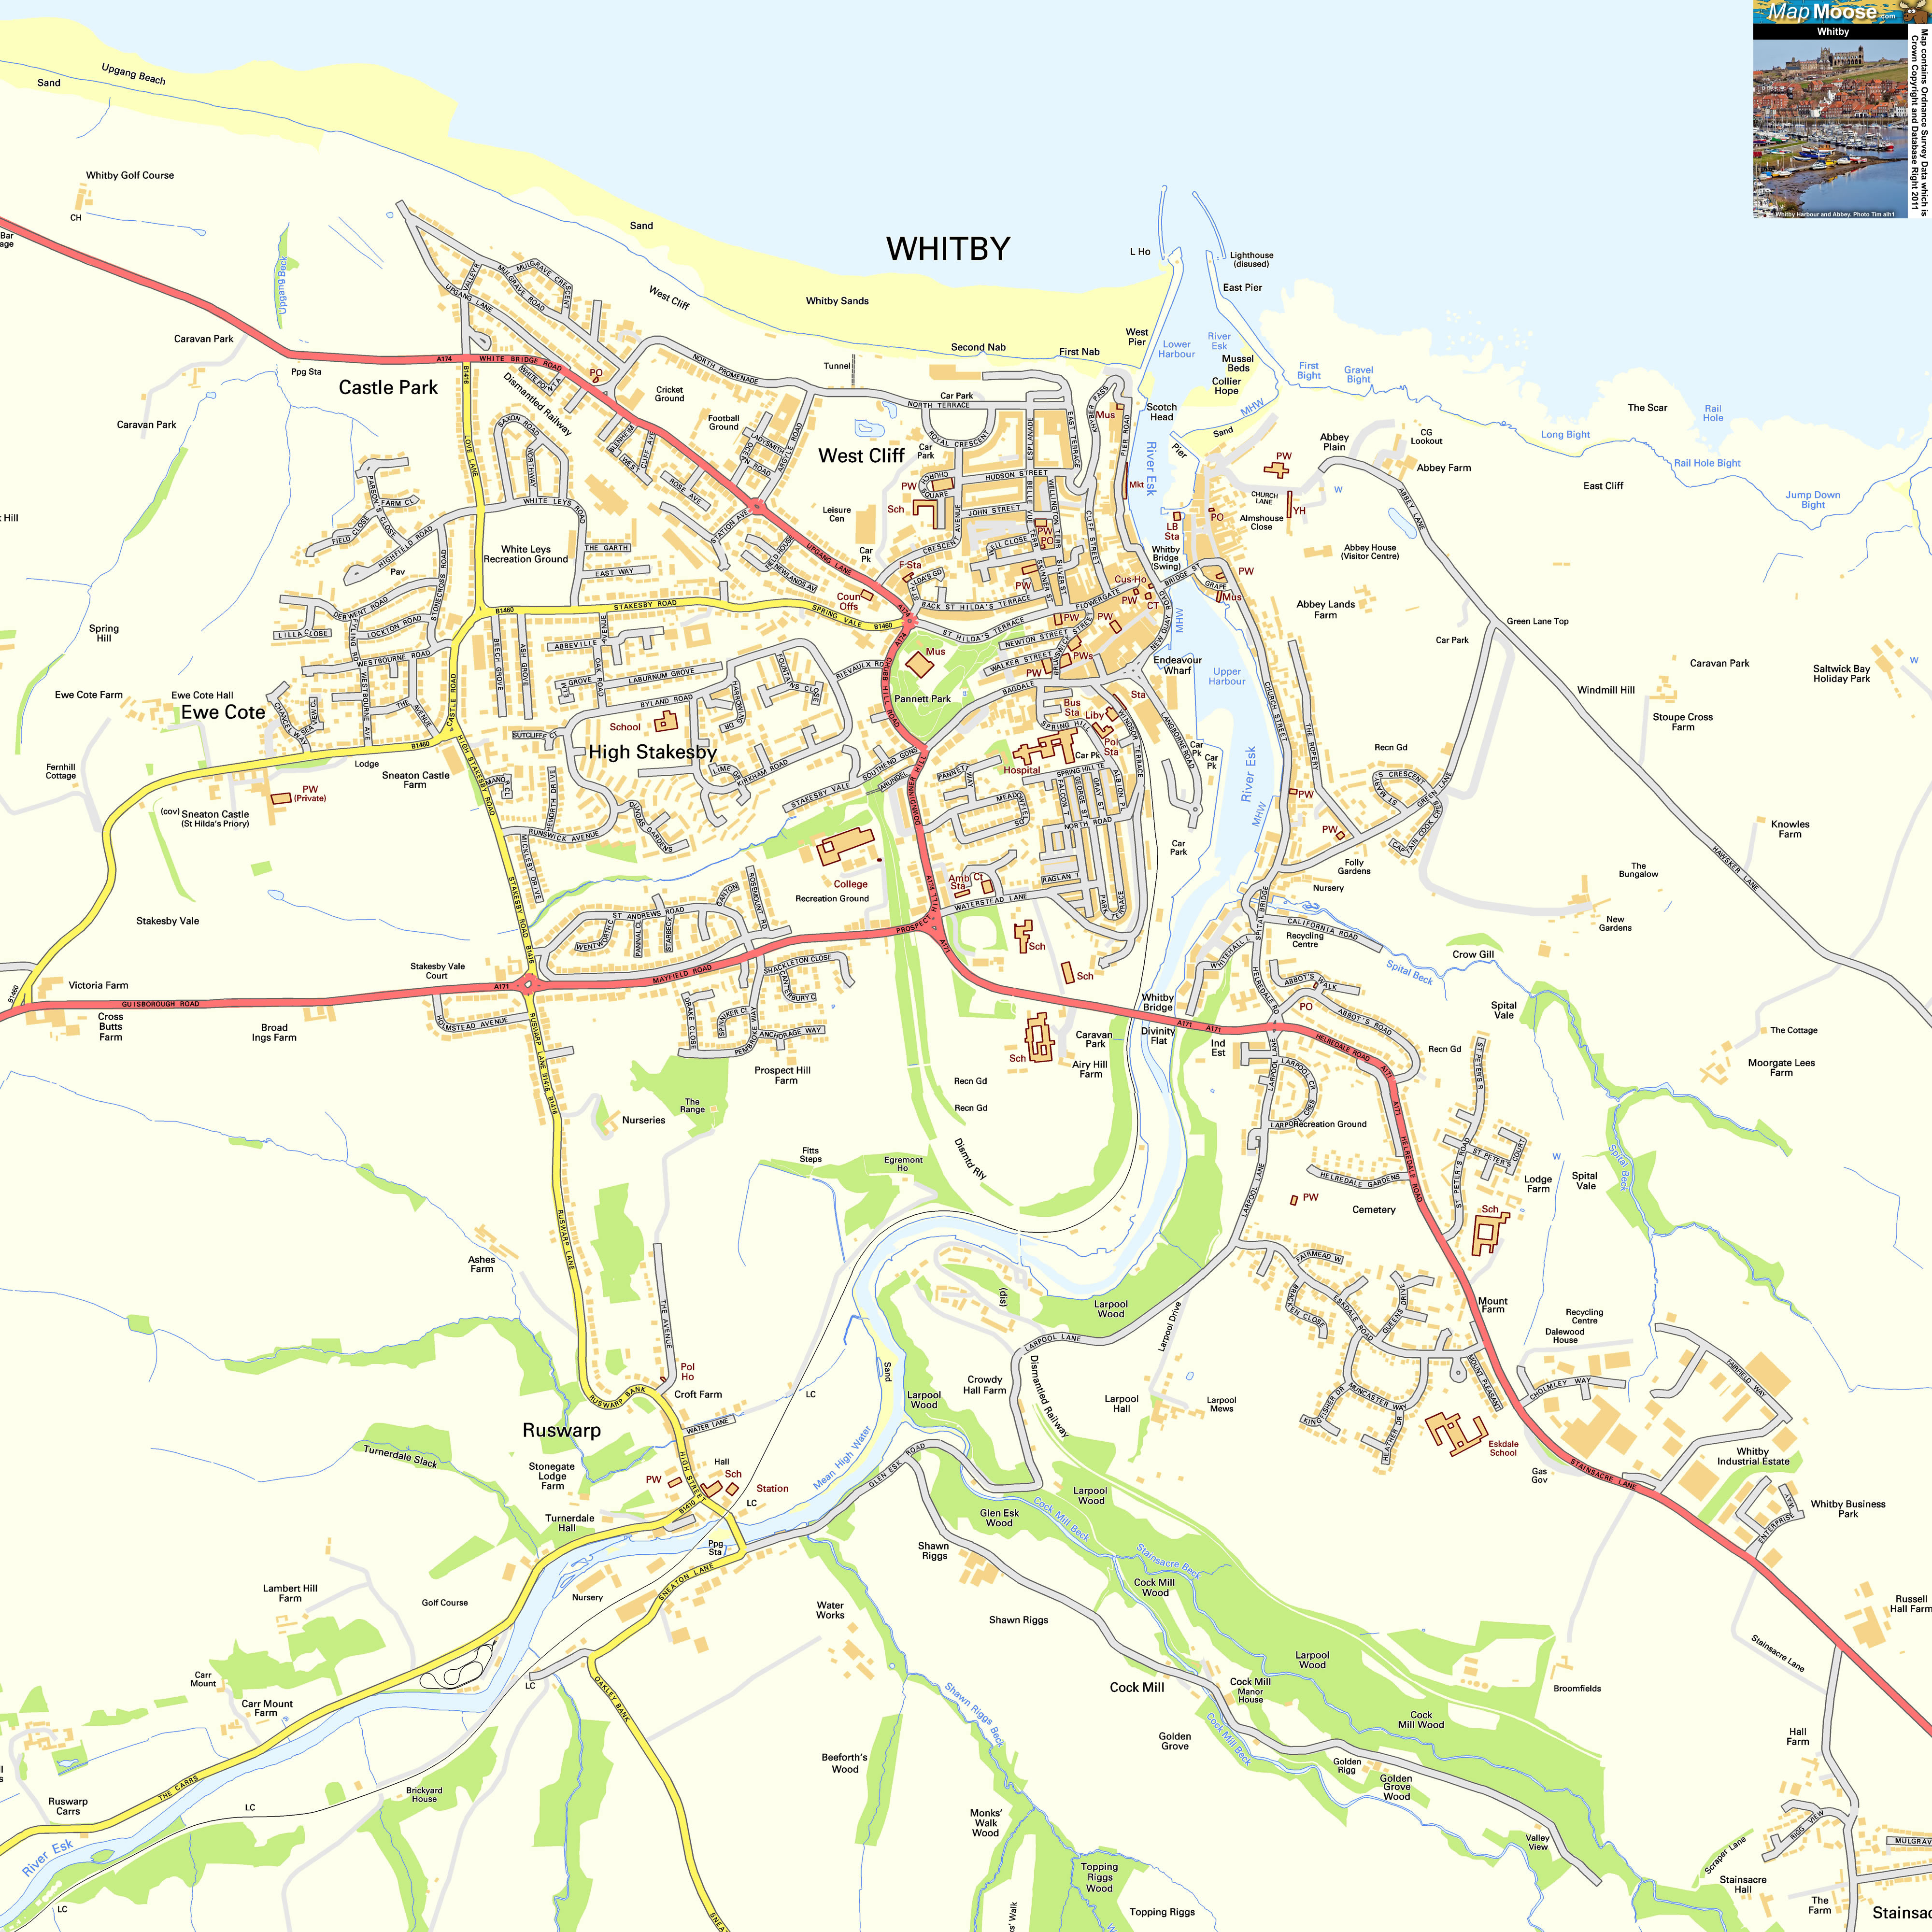 ipad google map street view with Whitby on Whitby as well Taxi Booking Application 247 also Street Browser A Street View Client also Sitzplatzangebot Der Thai Airways Maschinen Von Deutschland Nach Bangkok 10505 moreover Streets 3 Review Google Street View Panoramas Now Your Apple Watch.